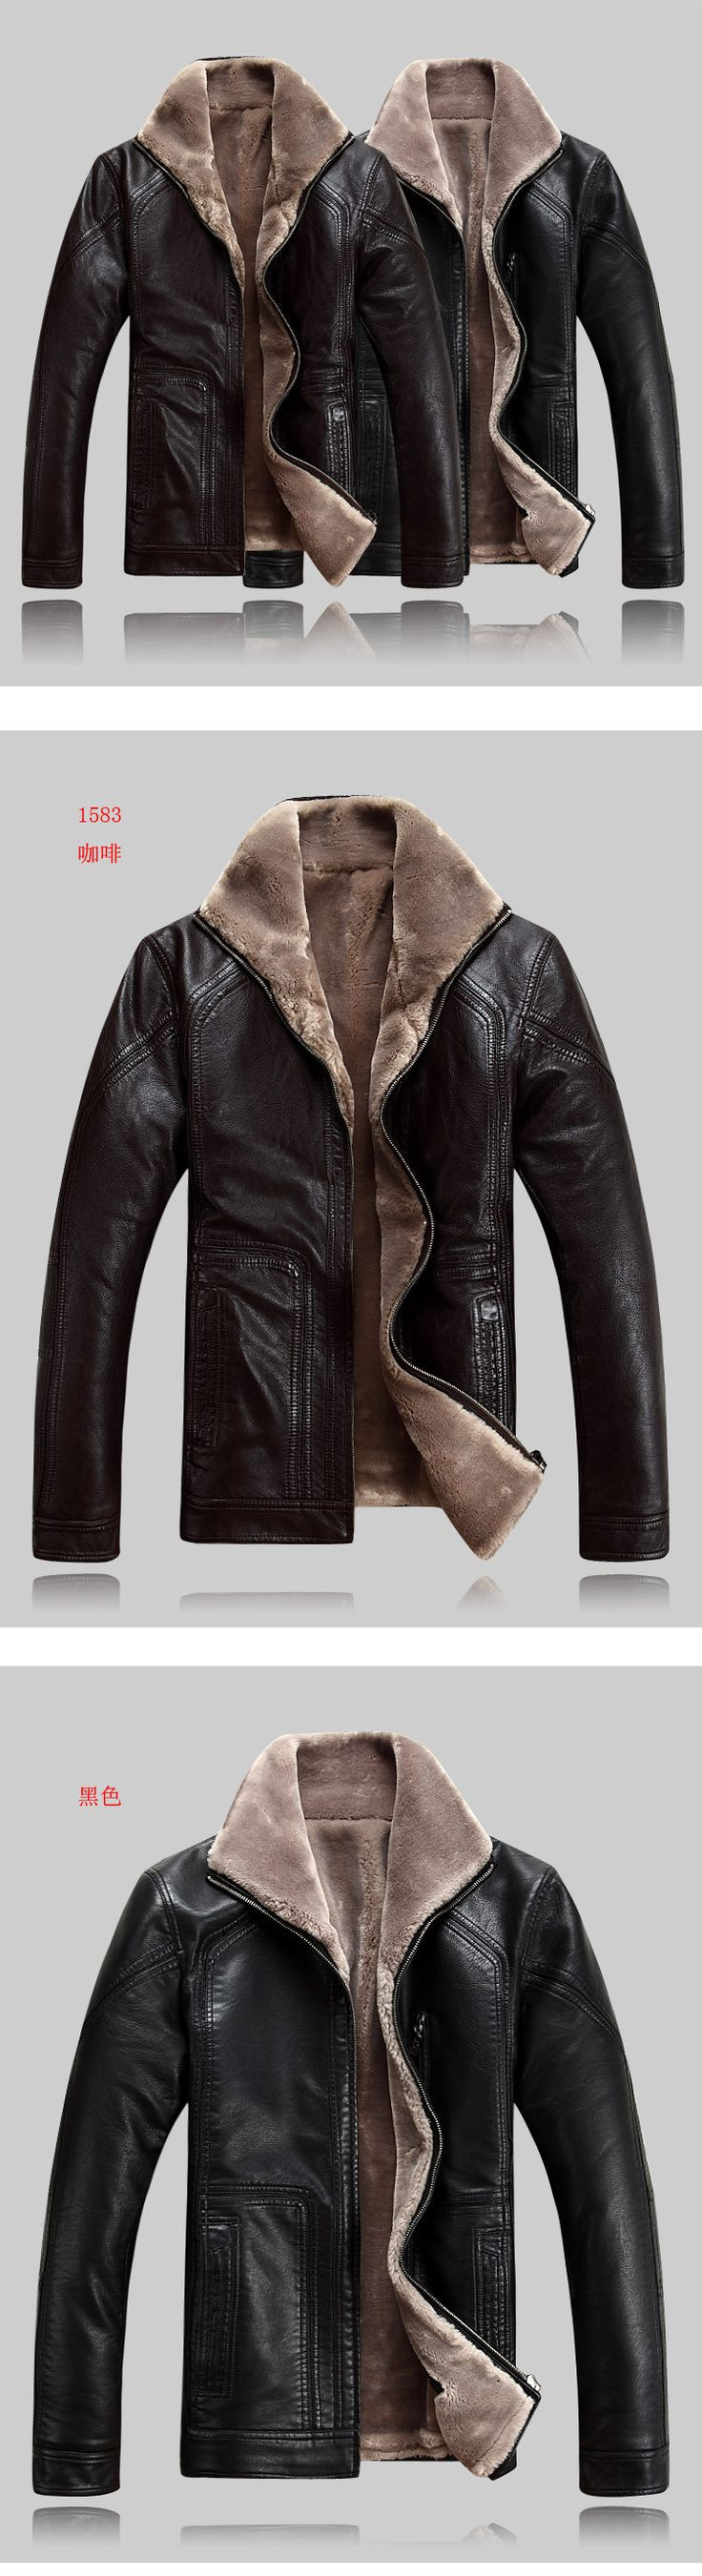 Autumn and winter mens faux leather jacket men faux fur jackets man plus size men leisure short coats size M-4XL free shipping Free Shipping Get yours now at : Oneshopexpress.com